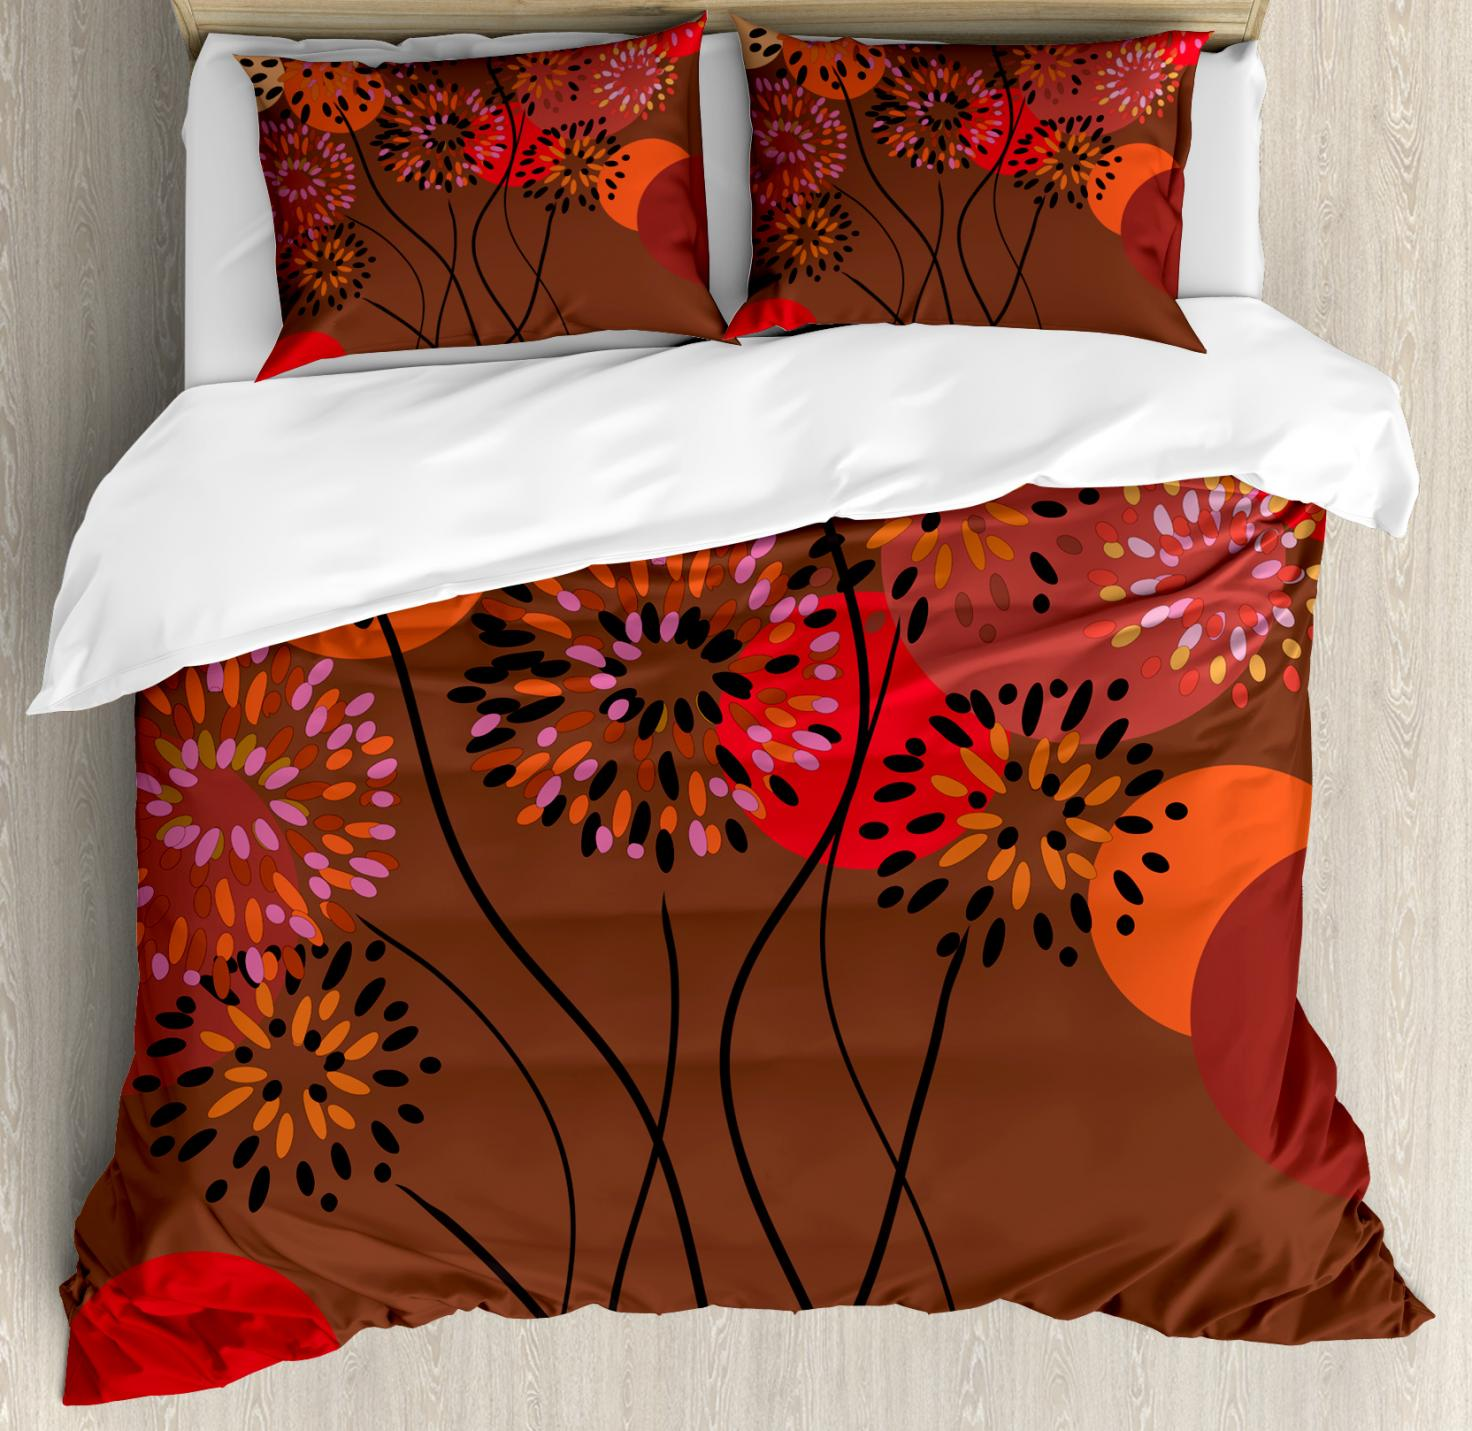 Patterned Duvet Cover Dandelion Duvet Cover Set Floral Patterned Illustration With Wavy Pedicles And Big Dots In Autumn Colors Decorative Bedding Set With Pillow Shams